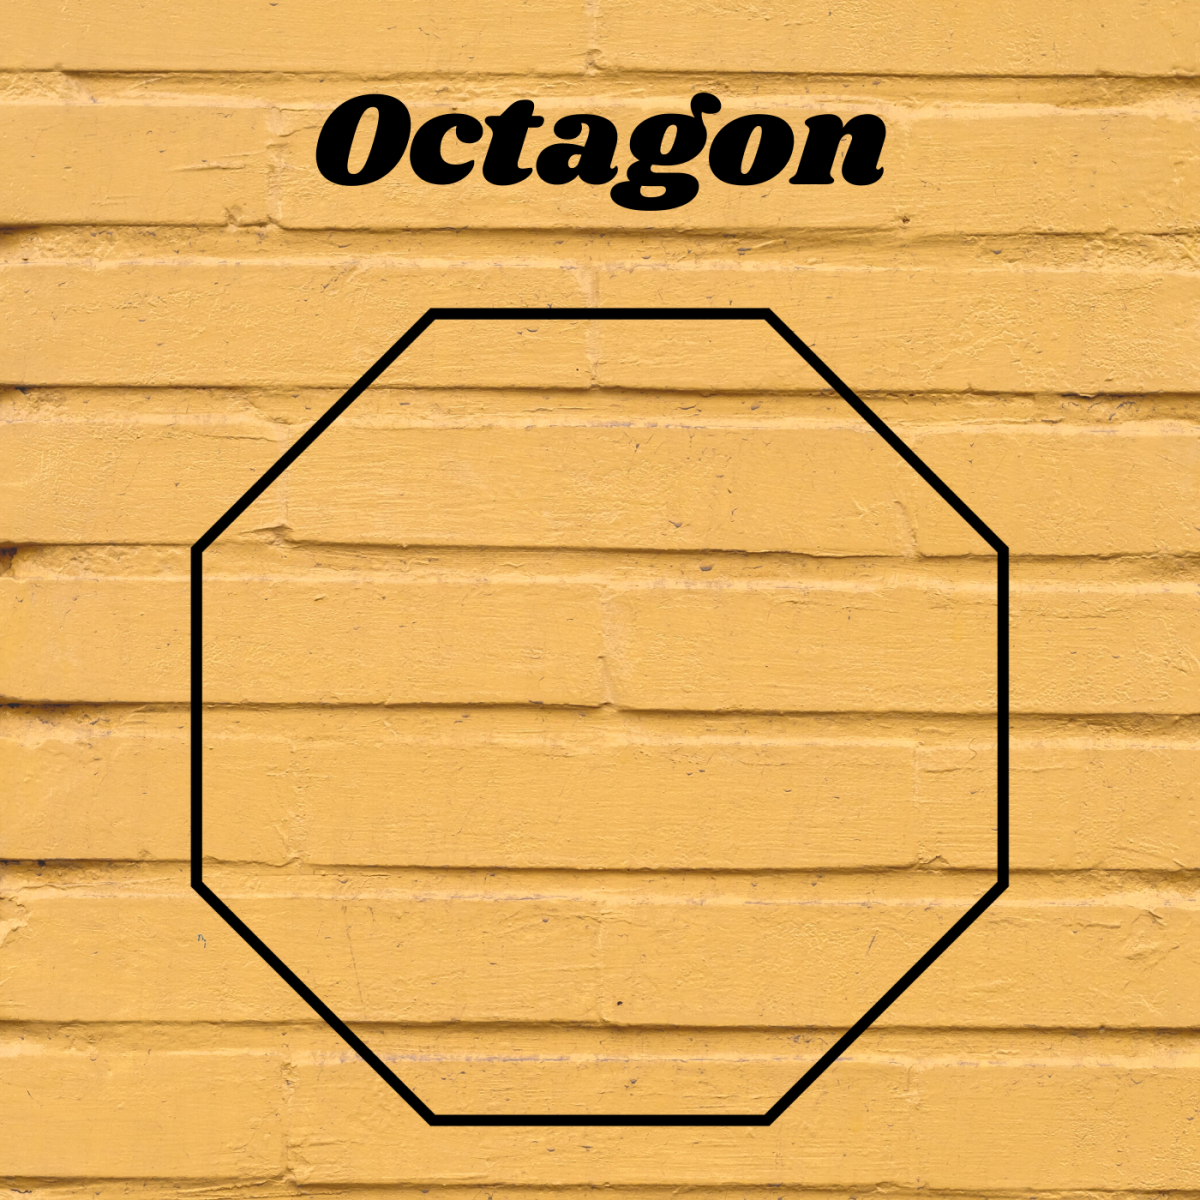 Octagons have eight sides.